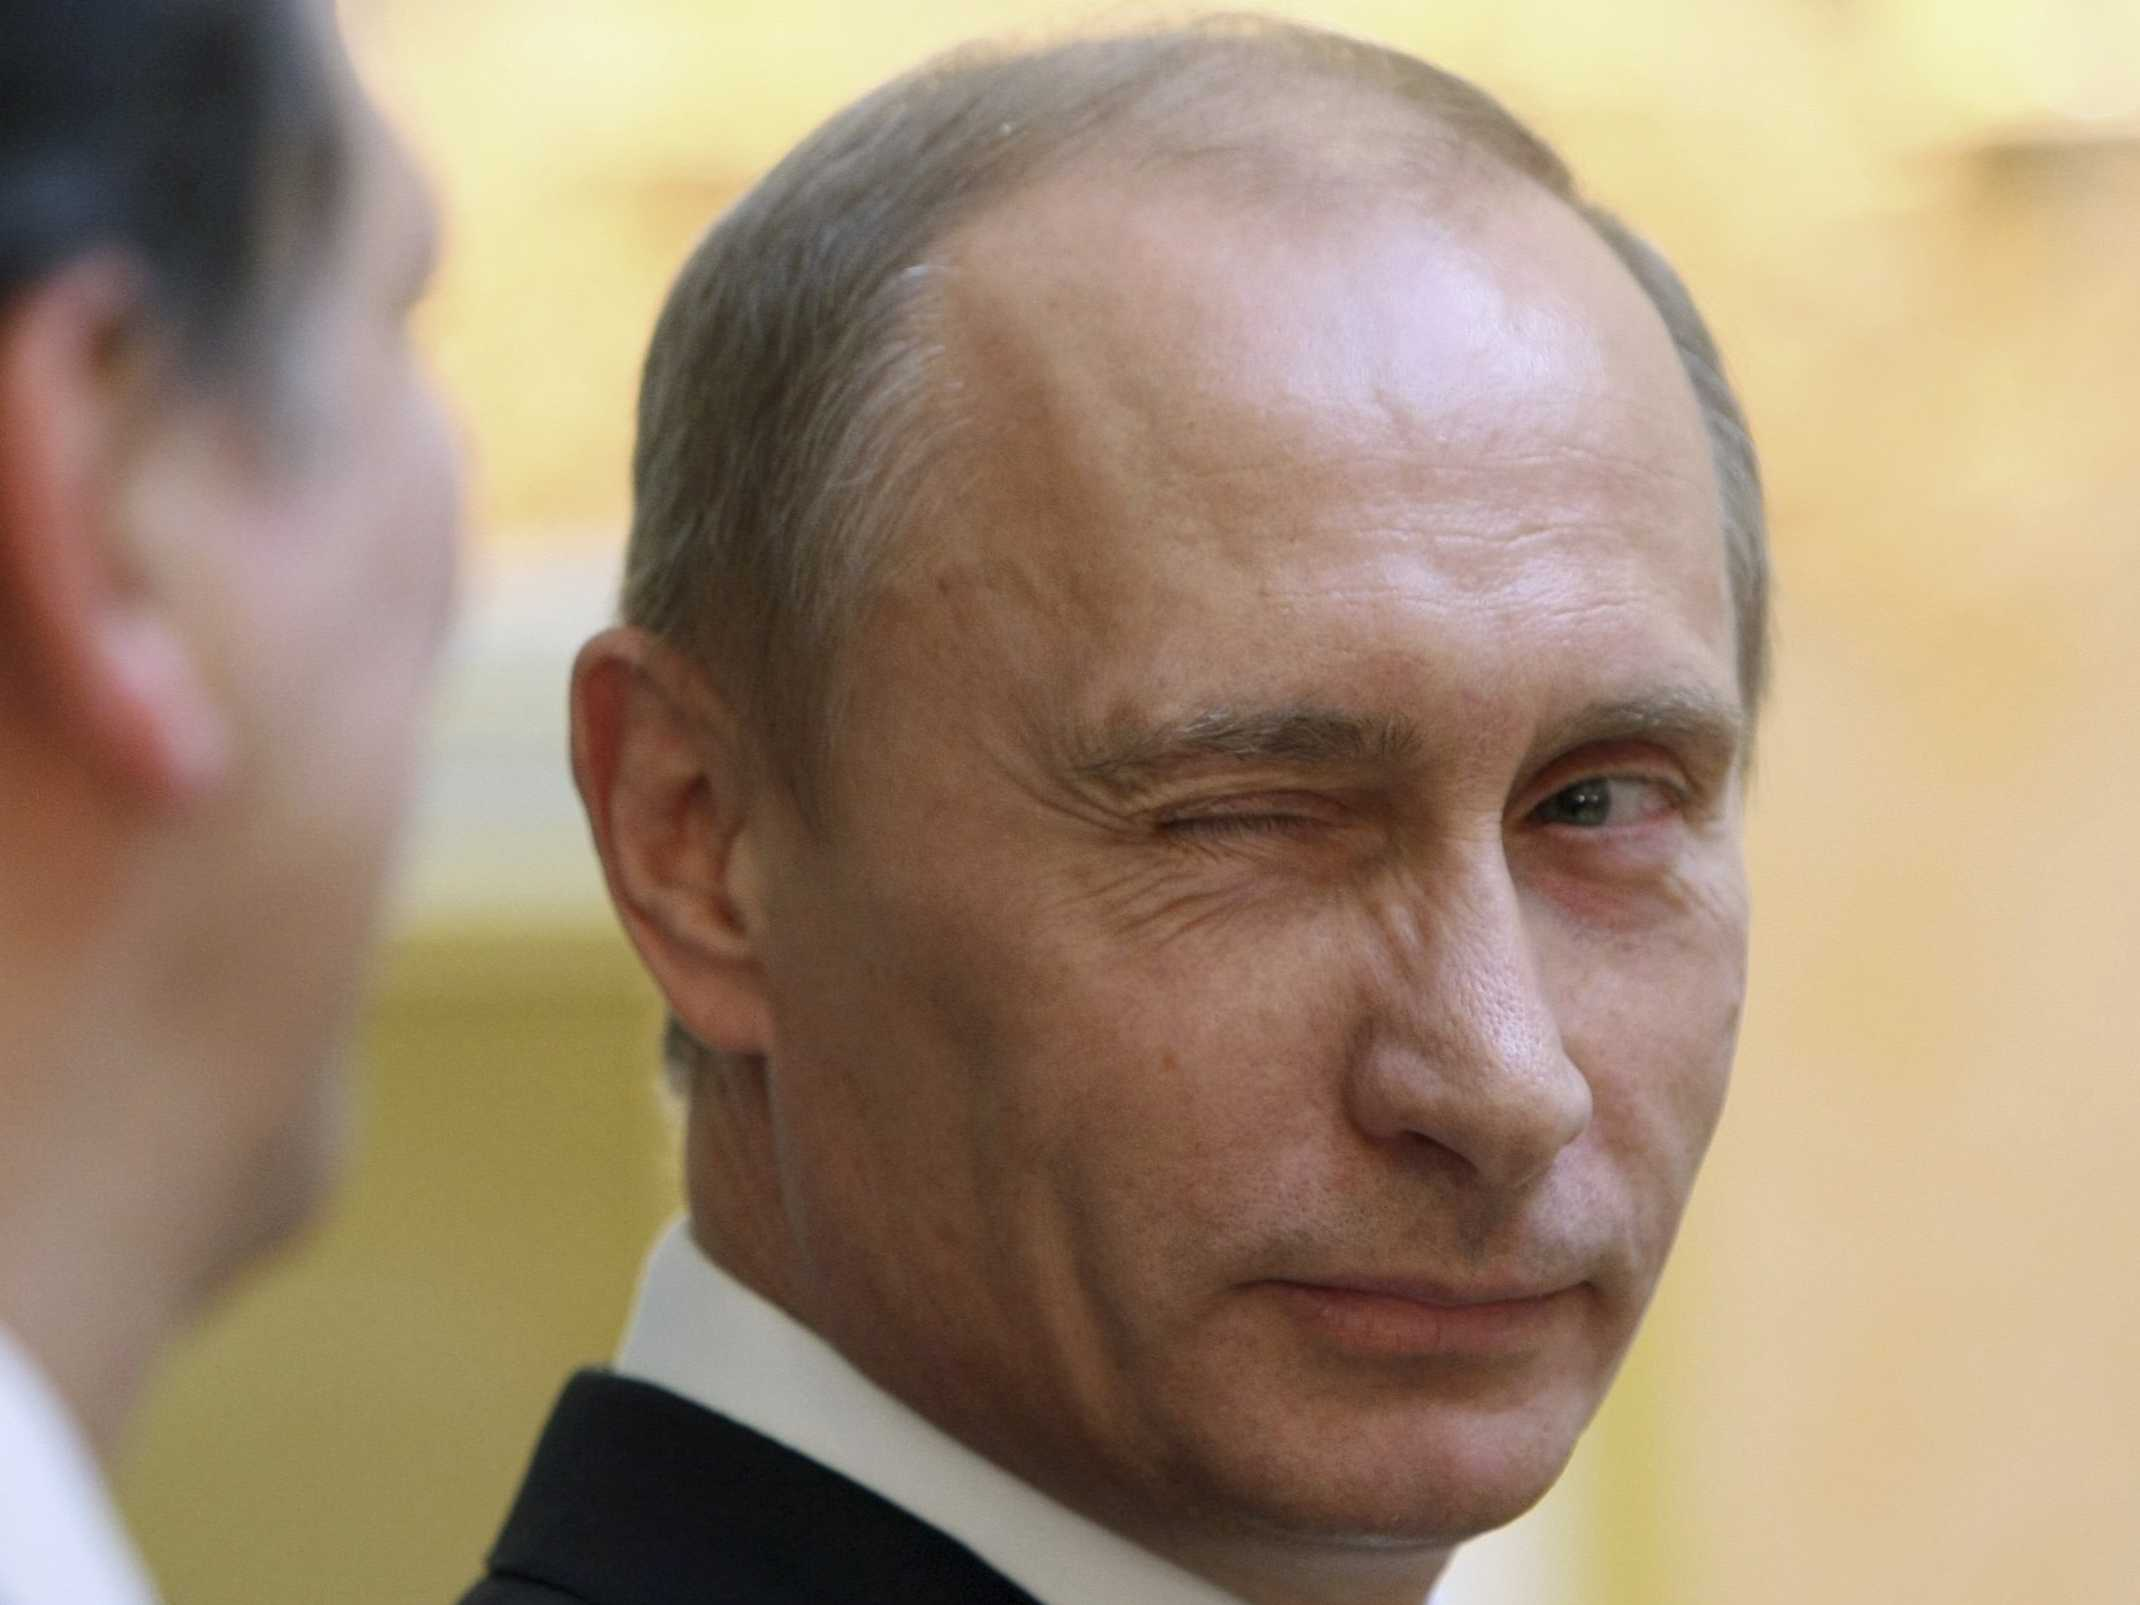 Excalibur was pulled from rock by Putin.